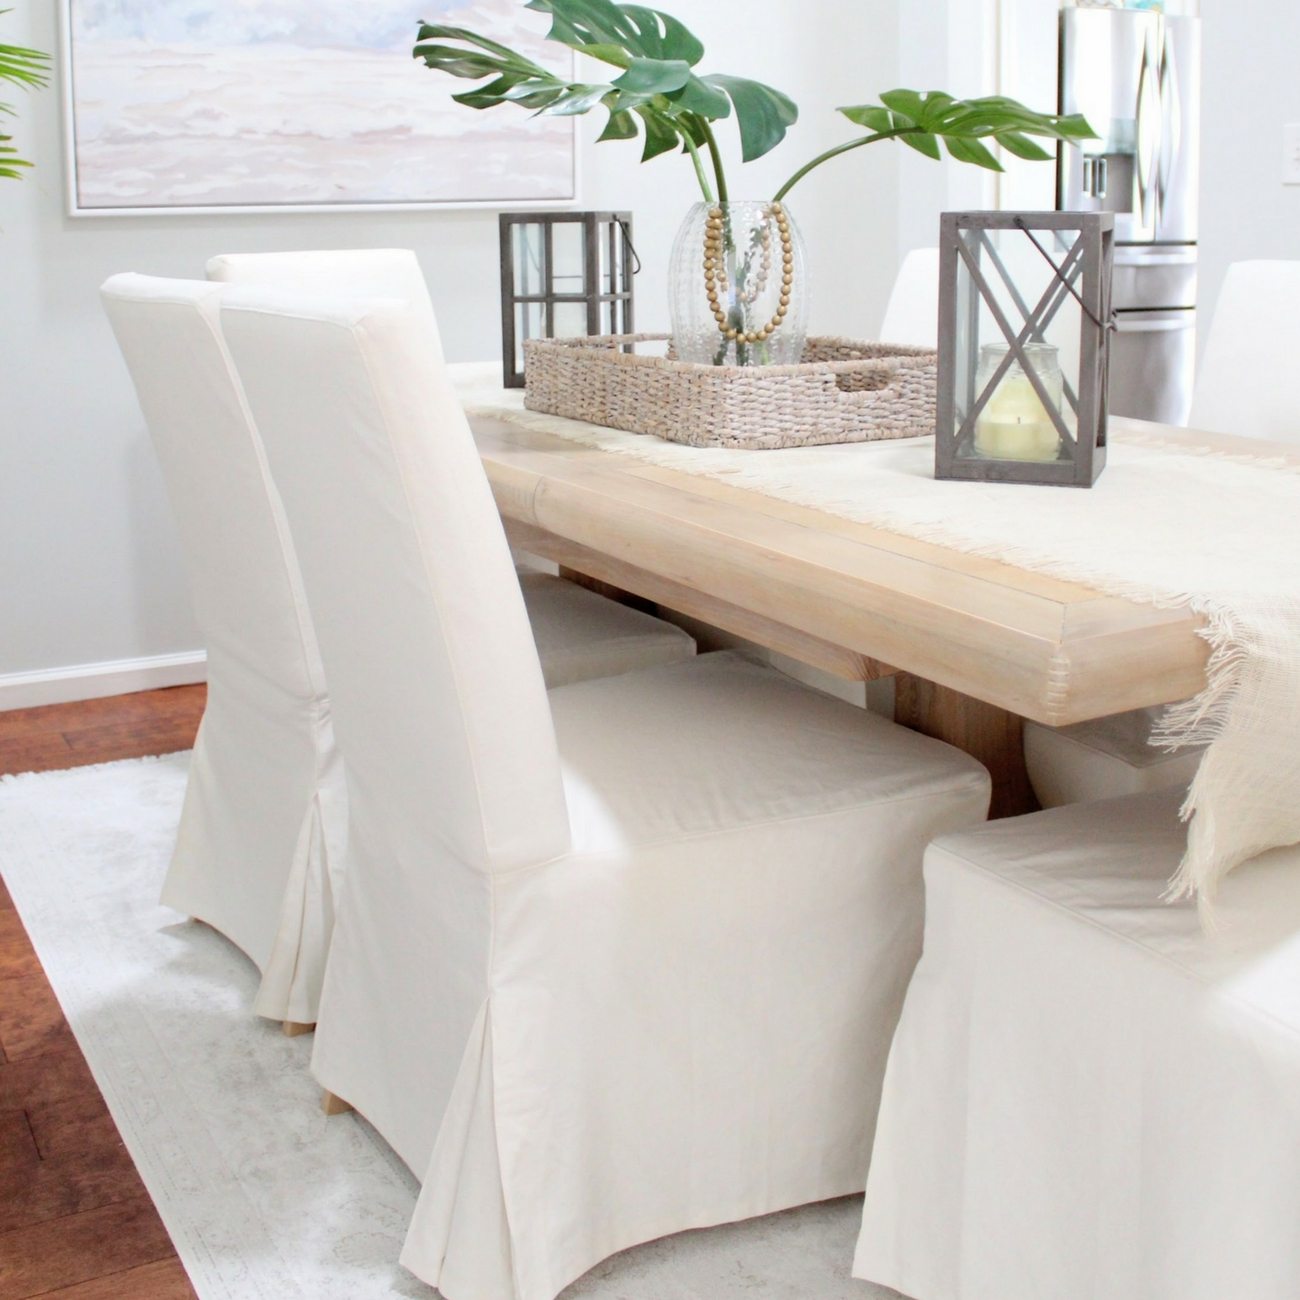 Dining Chair Slipcover Why I Love My White Slipcovered Dining Chairs House Full Of